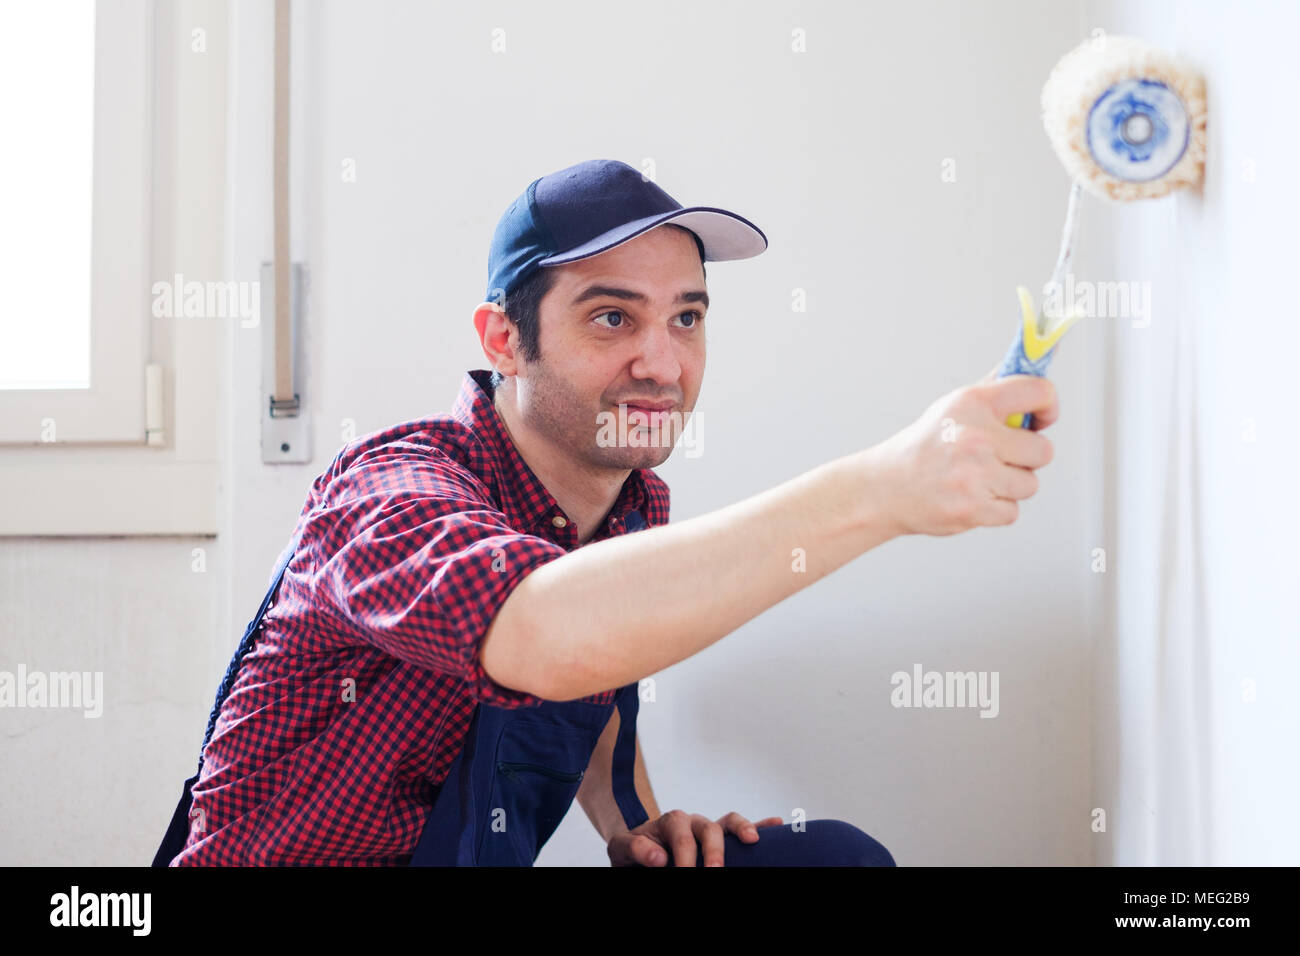 Painter man at work with a paint roller, home wall painting concept - Stock Image